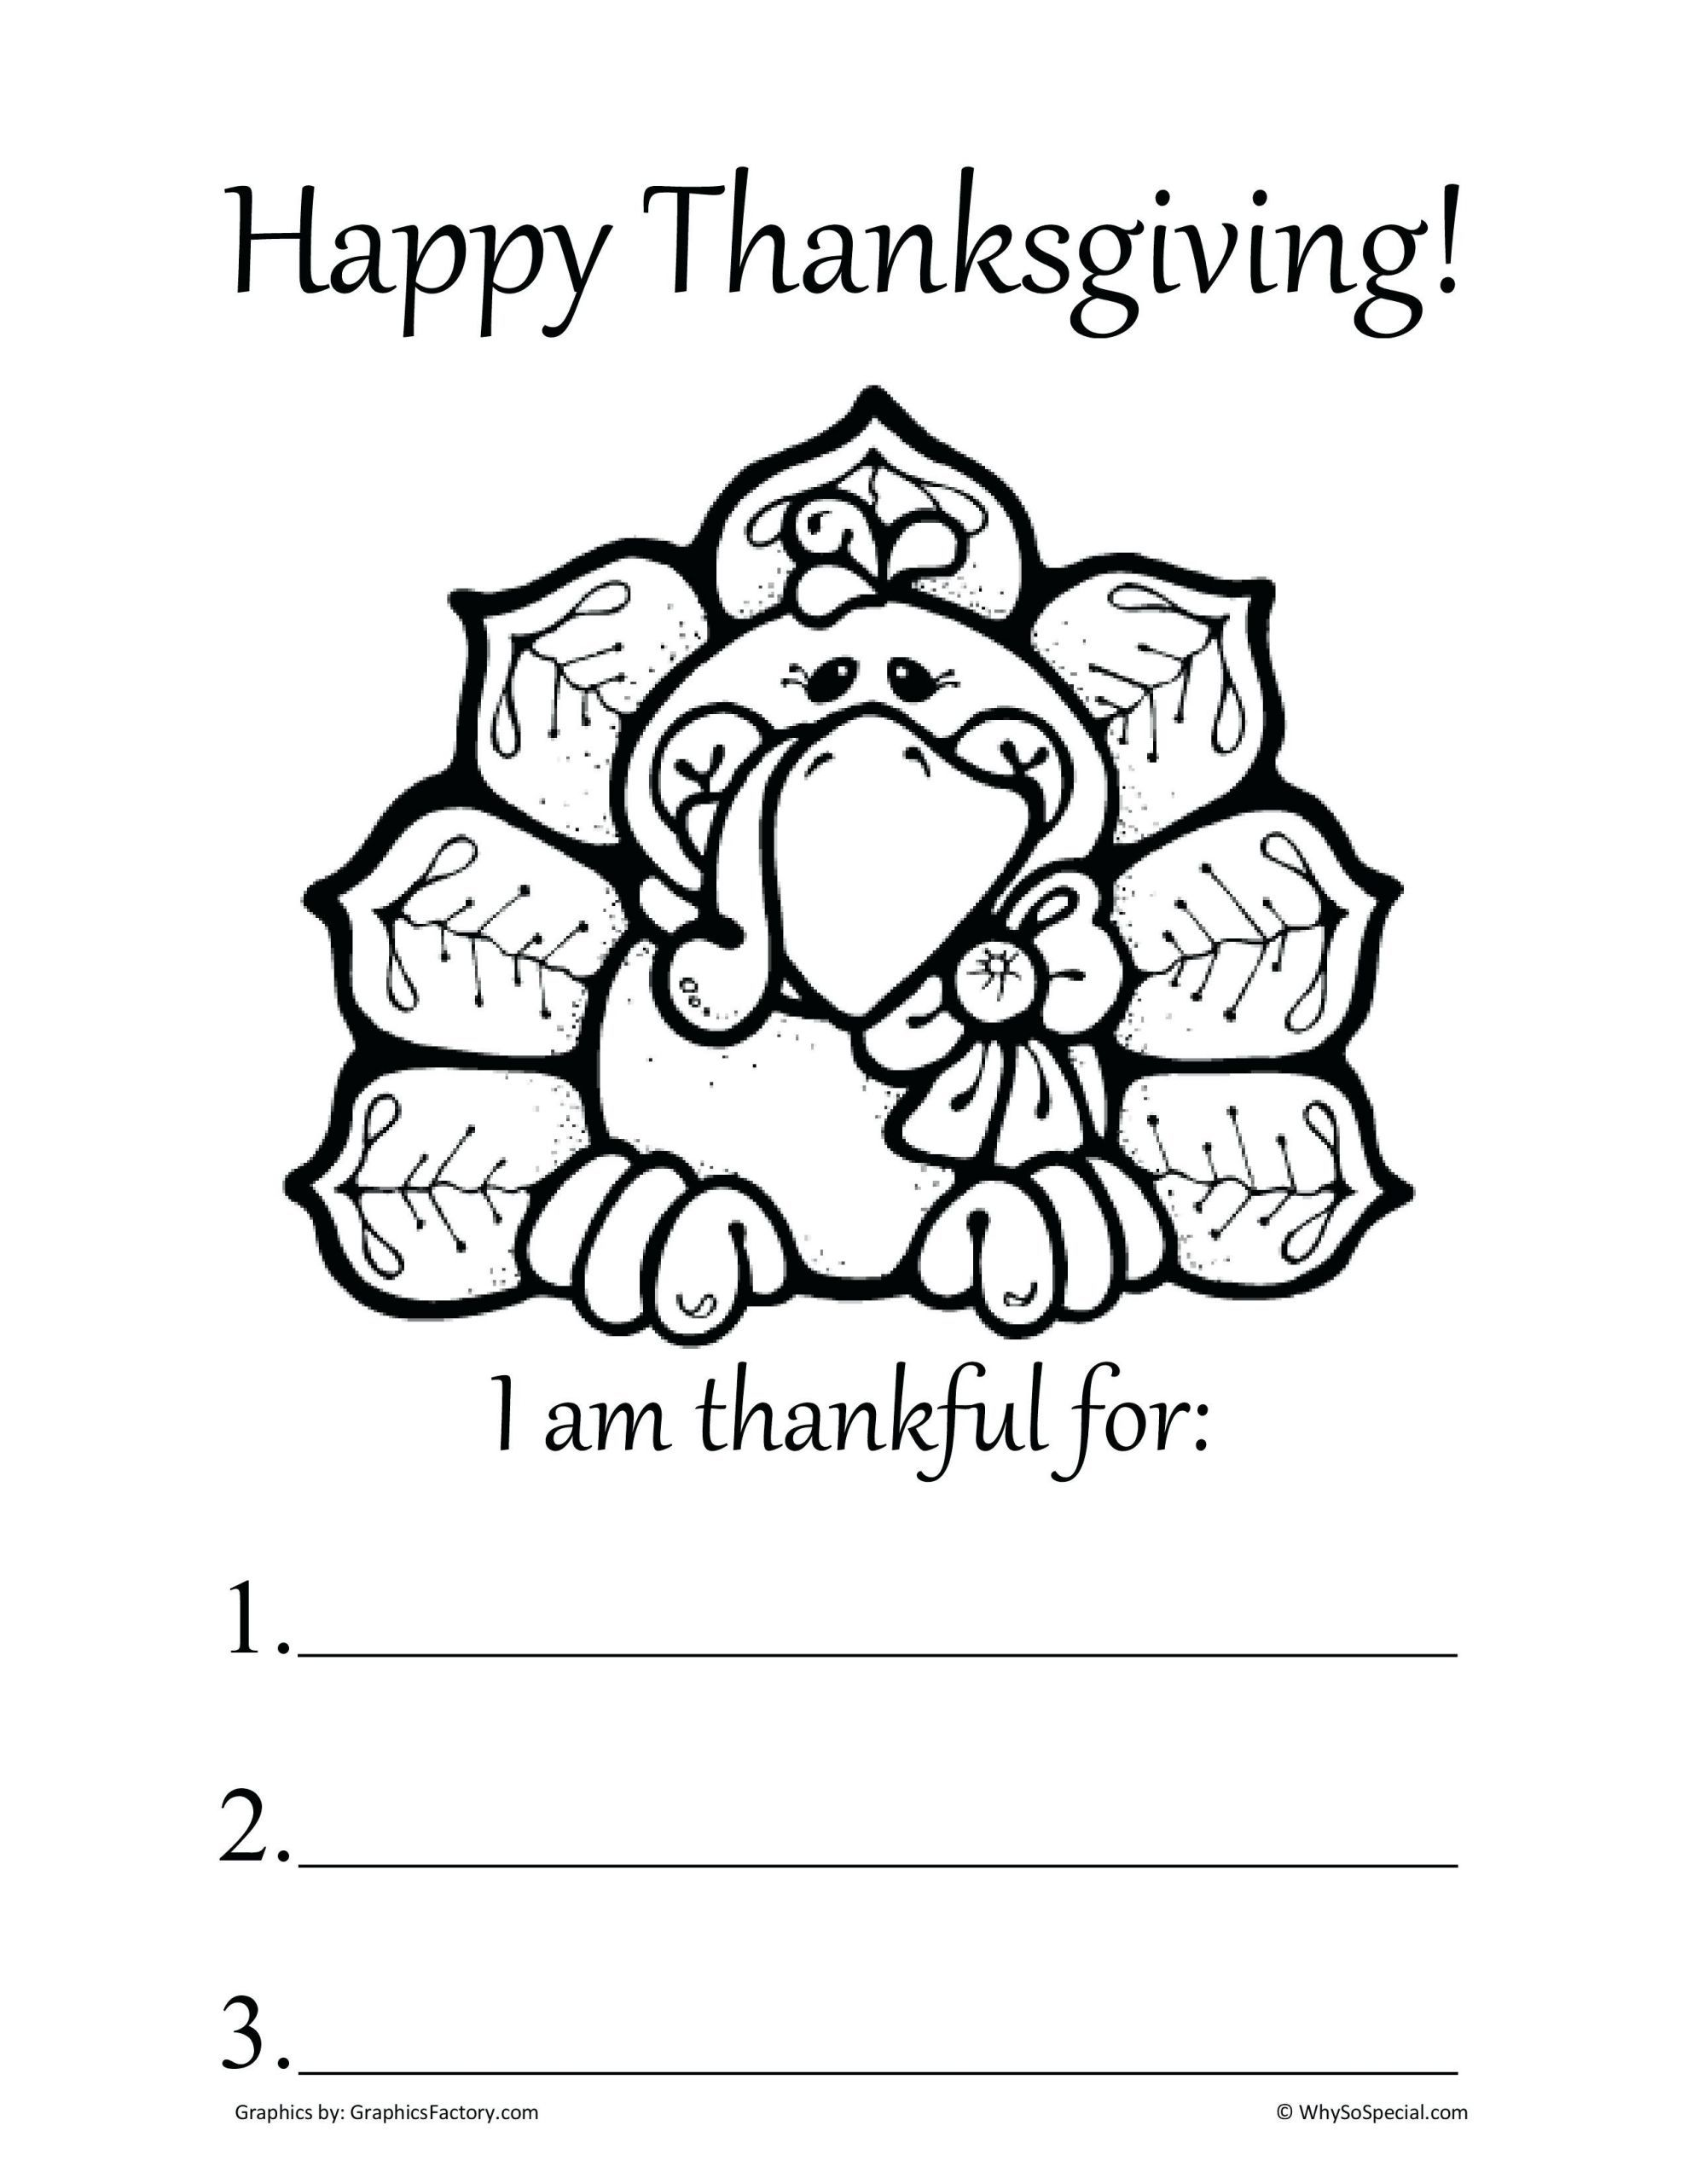 medium resolution of 4 Free Math Worksheets Second Grade 2 Skip Counting Skip Counting by 50  thank…   Thanksgiving math worksheets